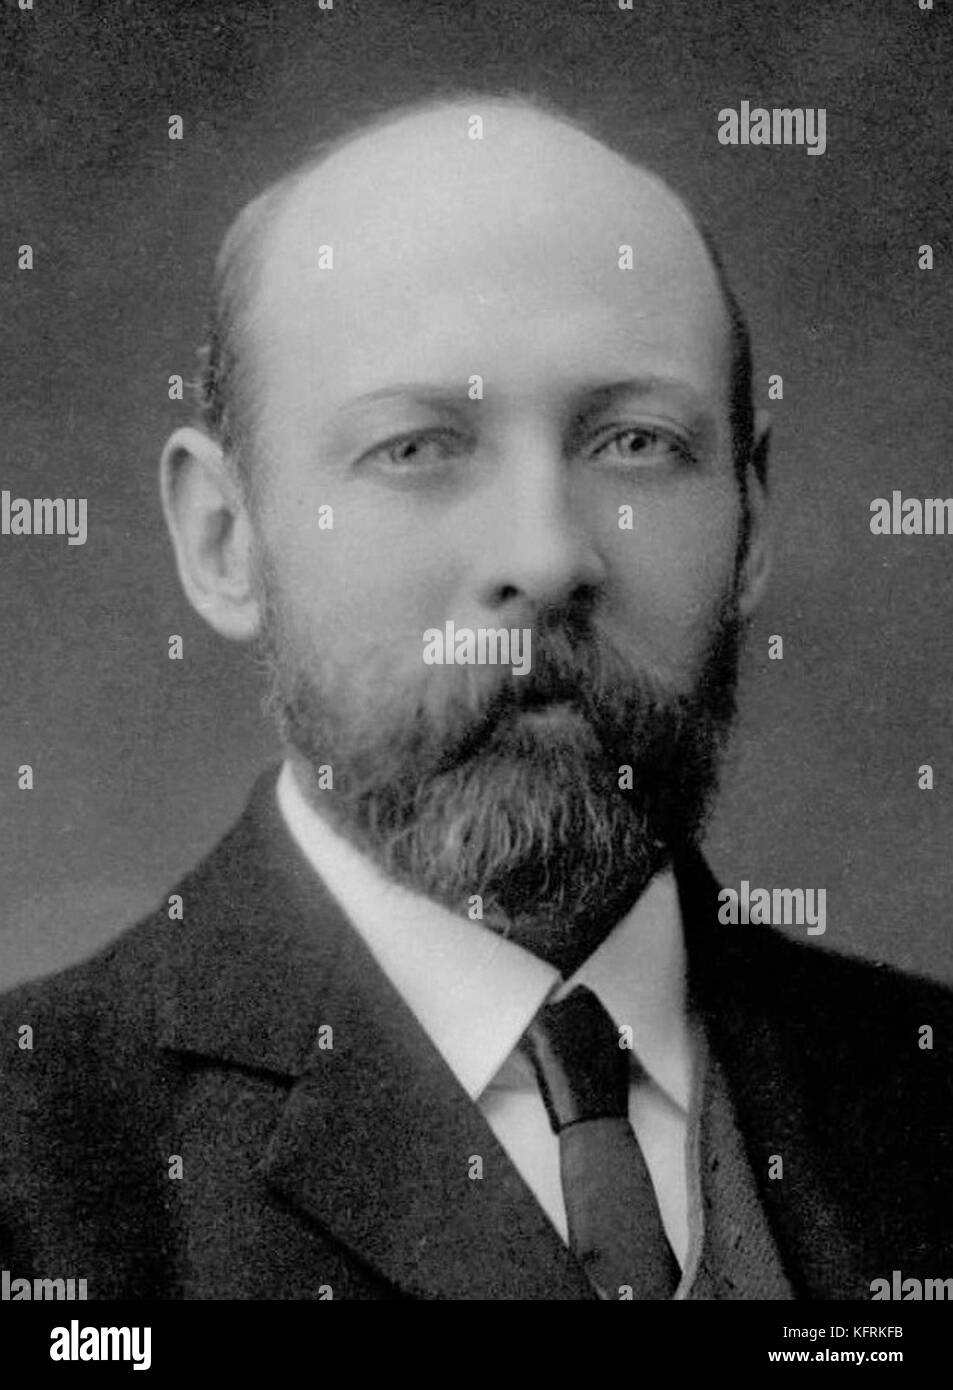 Sir Joseph Cook, Australian politician and Prime Minister of Australia - Stock Image